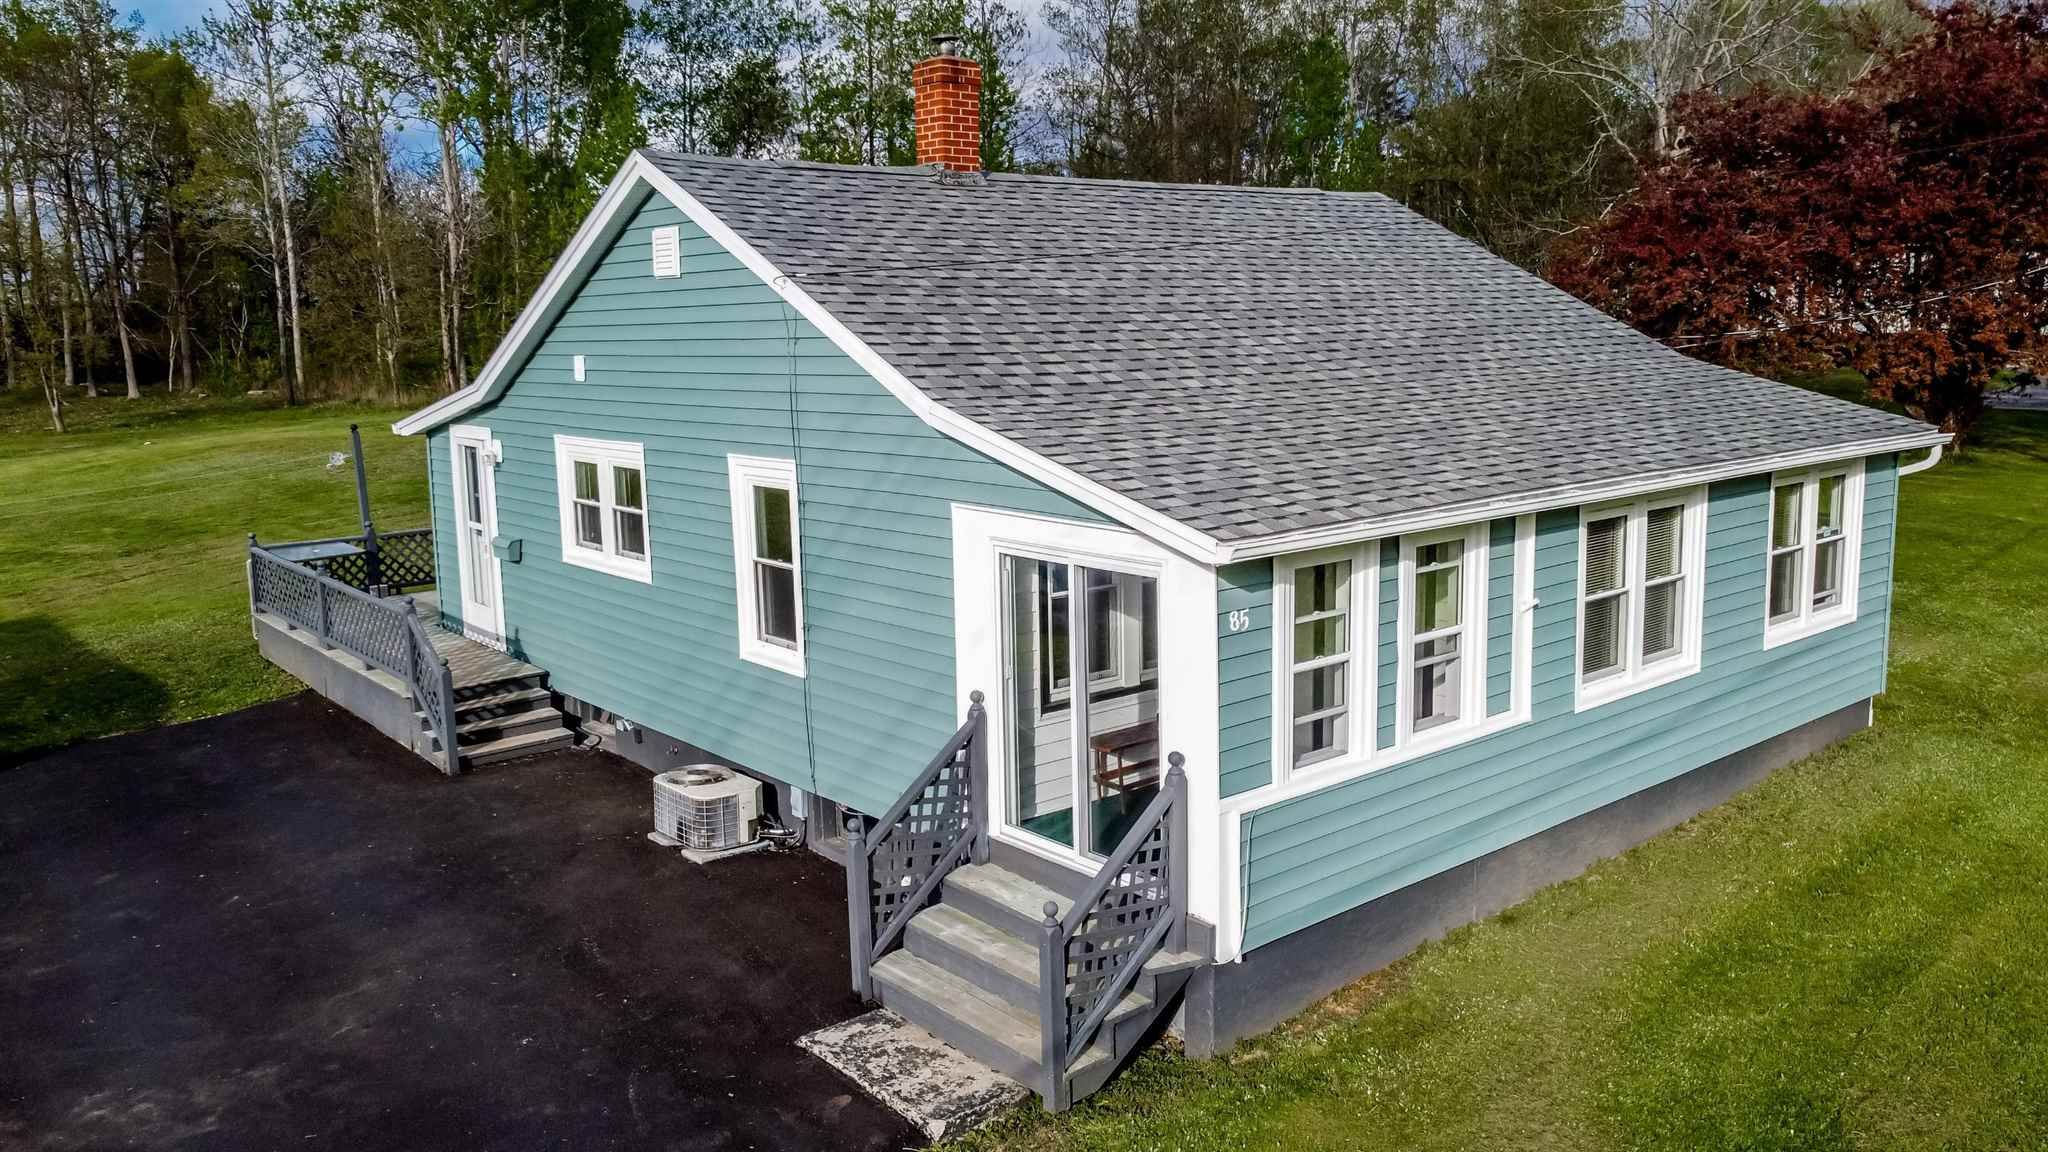 Main Photo: 85 Dugway Road in Allains Creek: 400-Annapolis County Residential for sale (Annapolis Valley)  : MLS®# 202112665